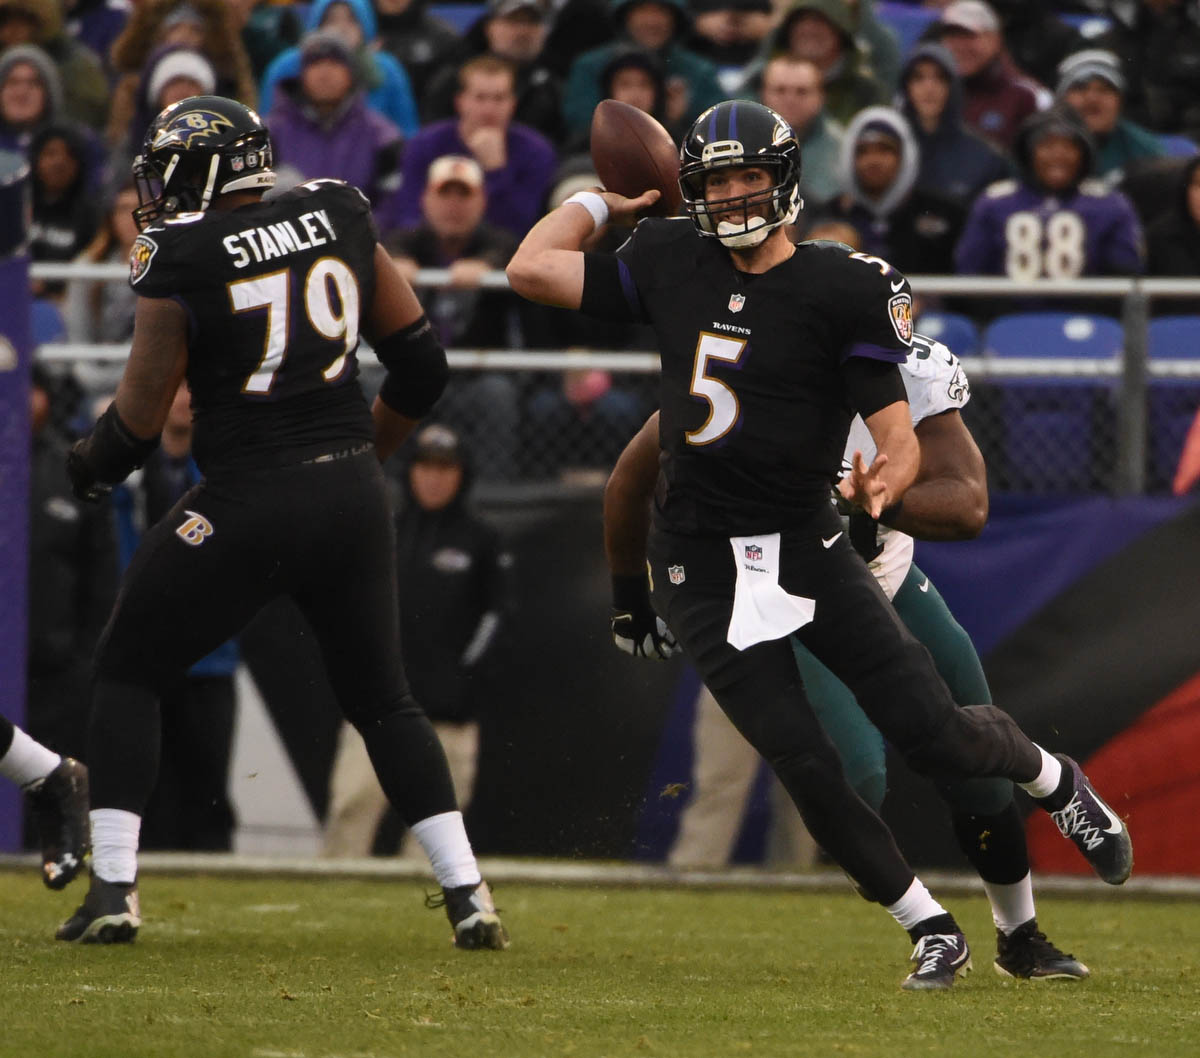 ravens vs eagles - photo #31